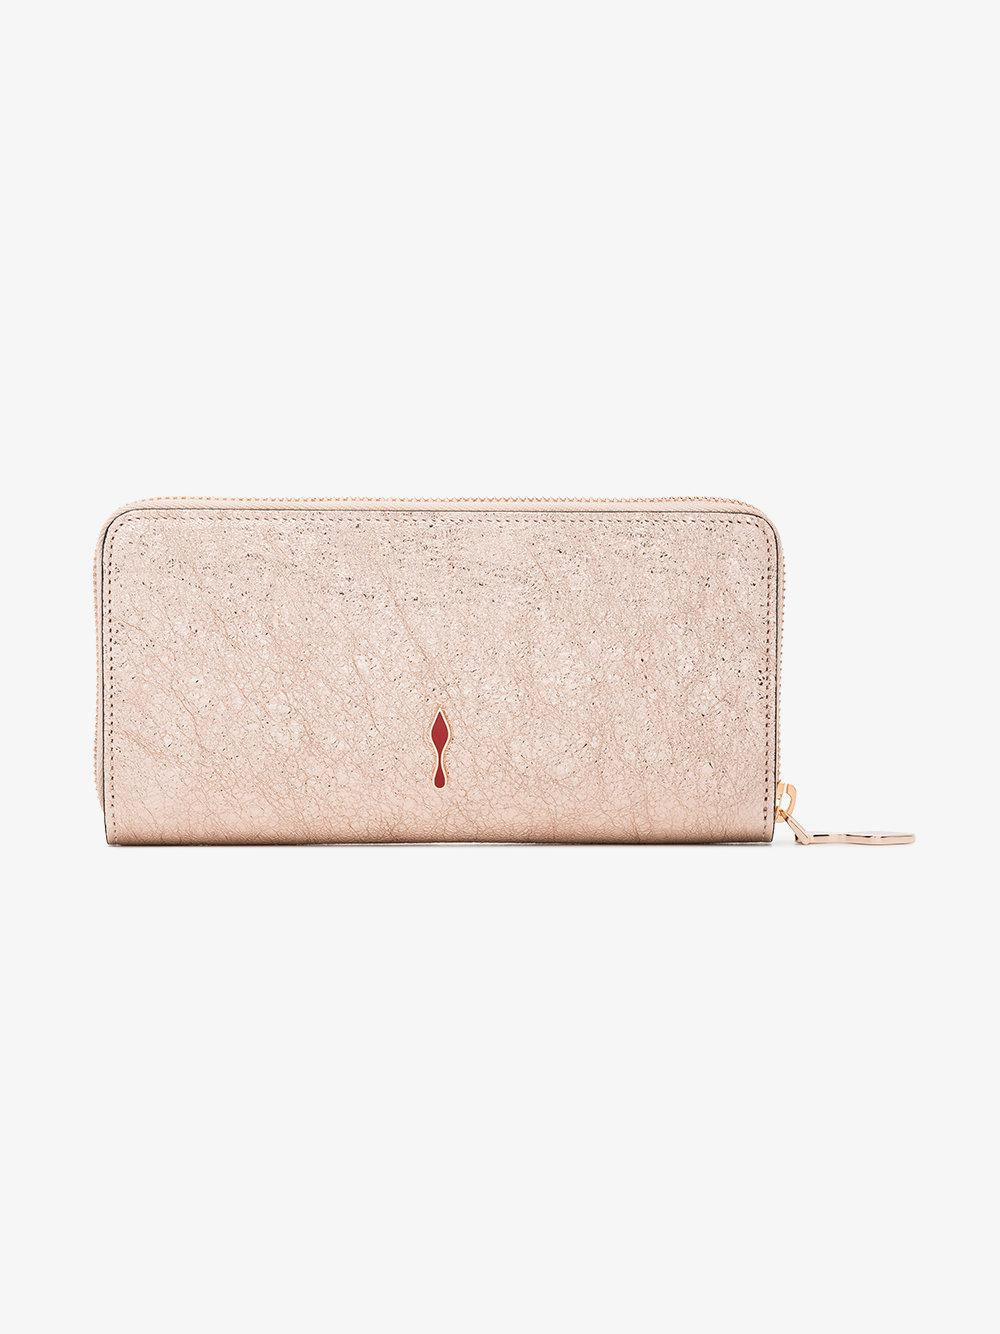 rose gold Panettone leather wallet Christian Louboutin l4zNRedeHk